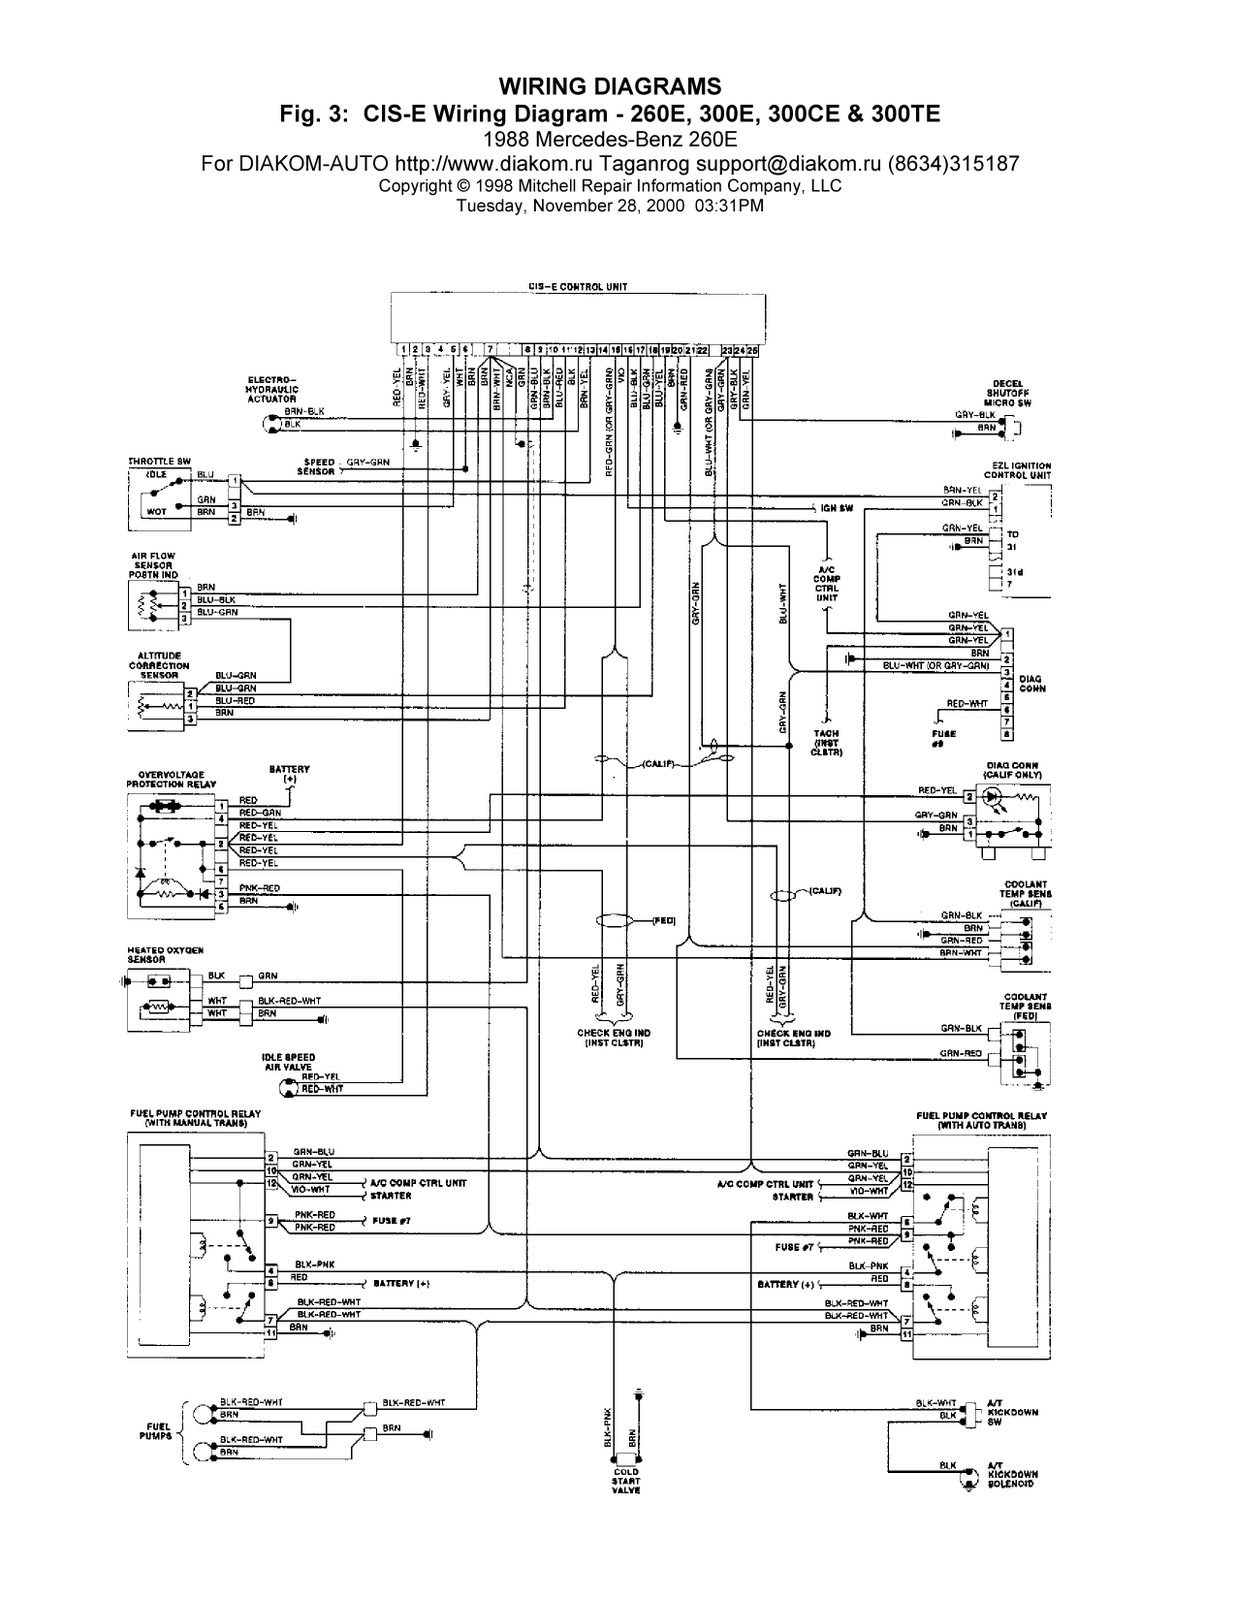 small resolution of 2001 ml320 fuse diagram wiring diagram g92000 benz ml320 fuse diagram wiring diagrams cks 07 mercedes